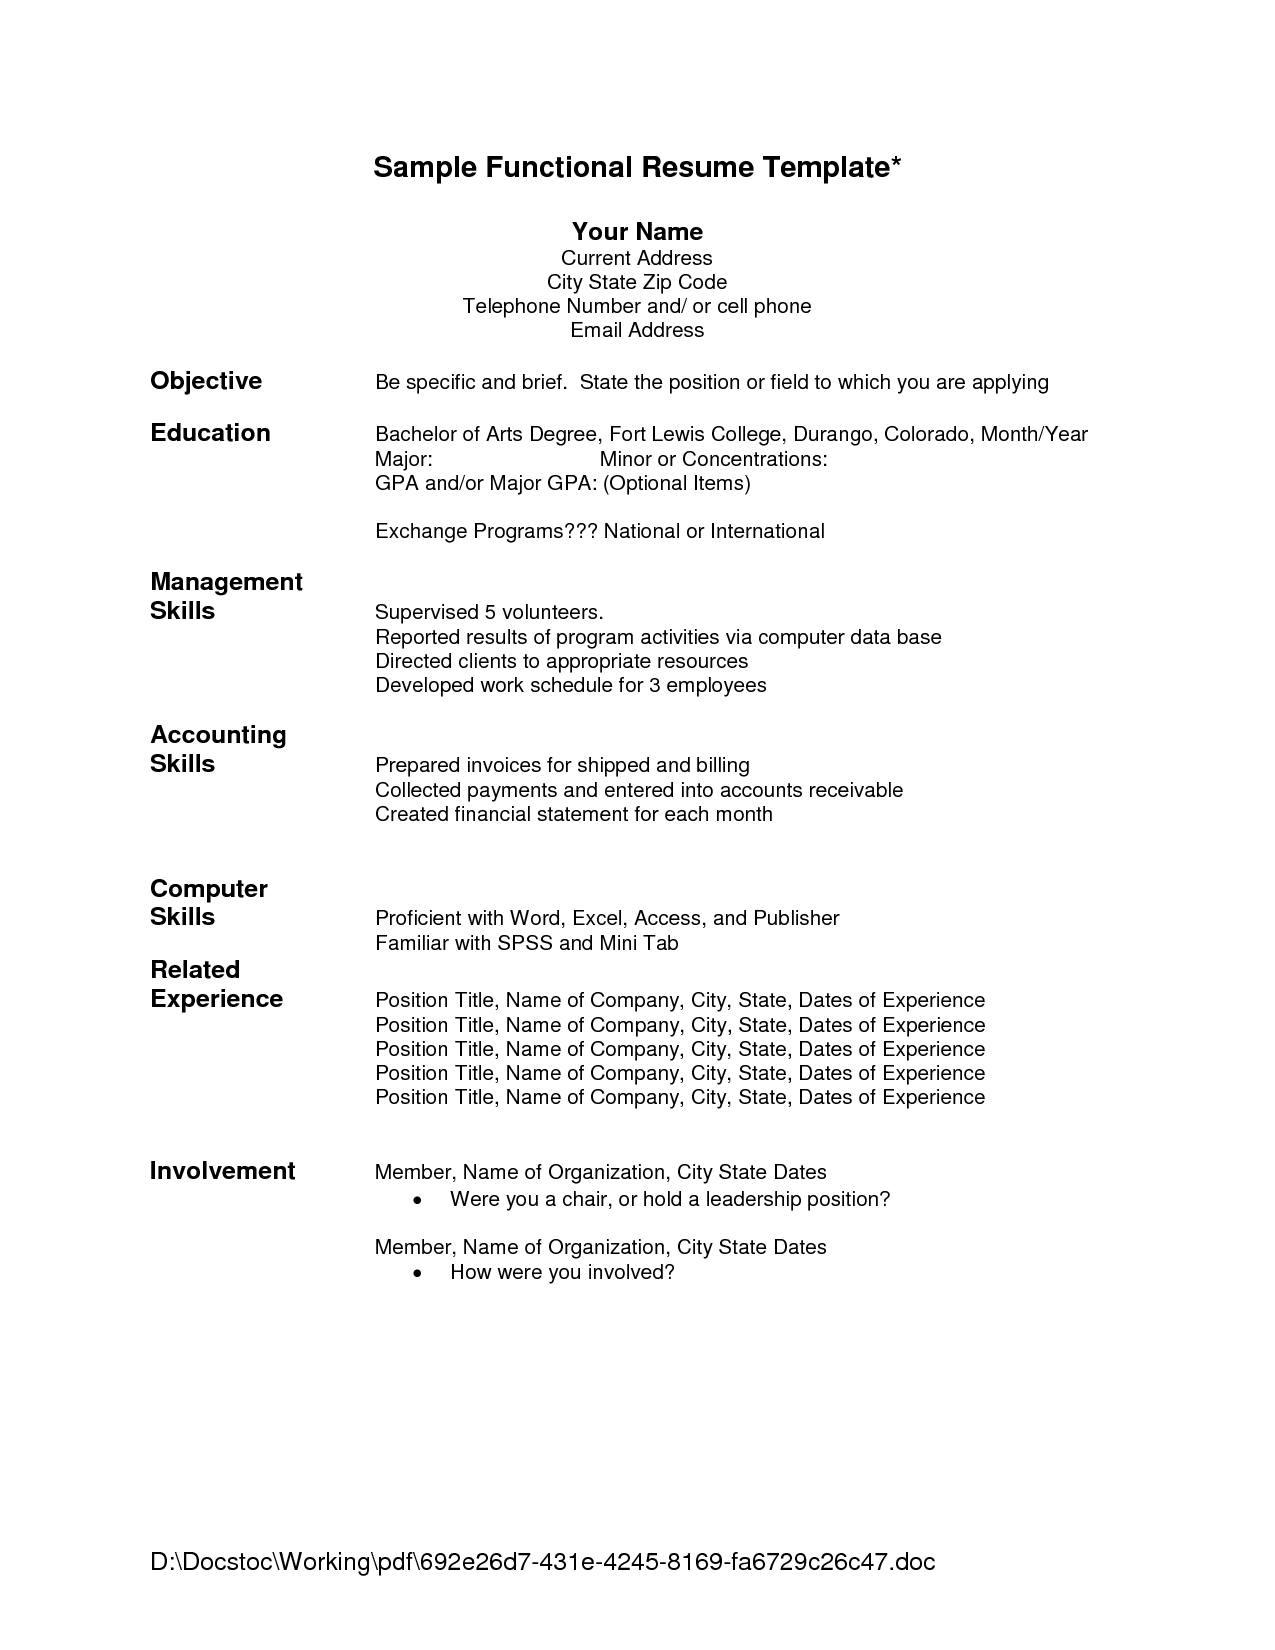 current resume format - gagnatashort.co